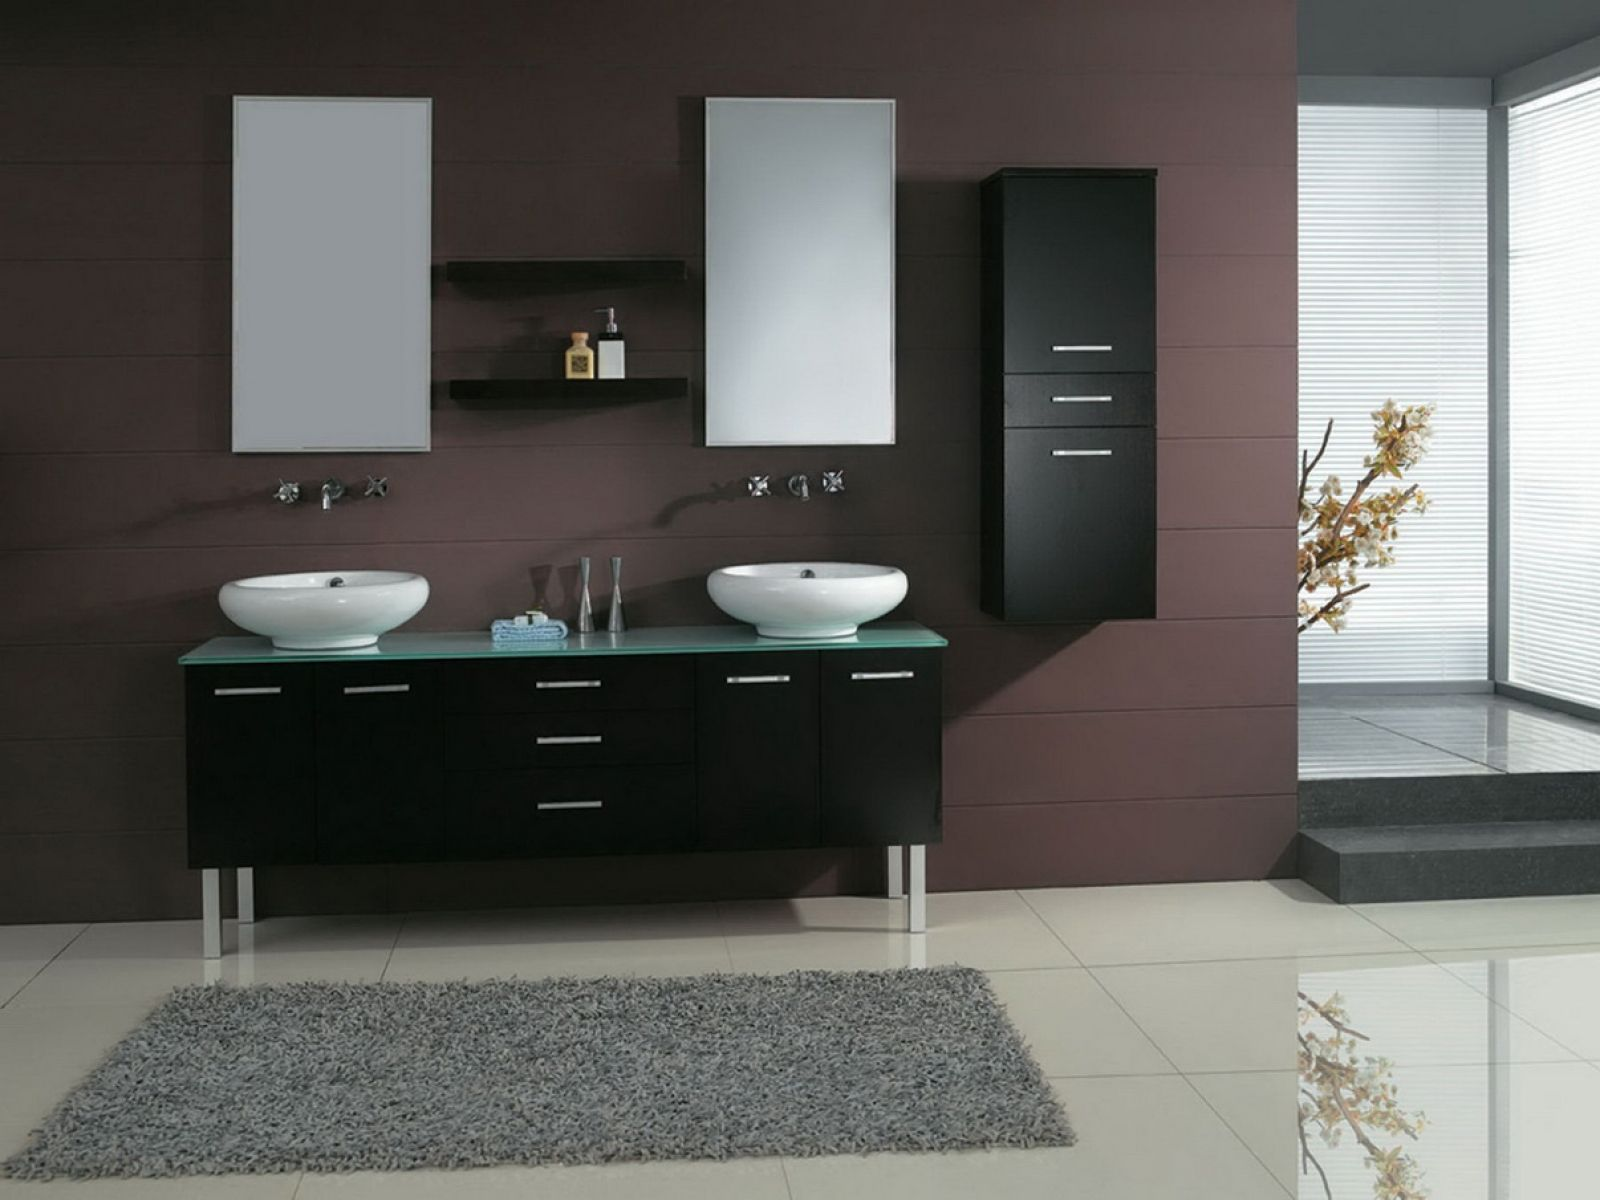 Bathroom Sinks Double Basin remarkable double bowl sink vanities for bathroom modern bathroom